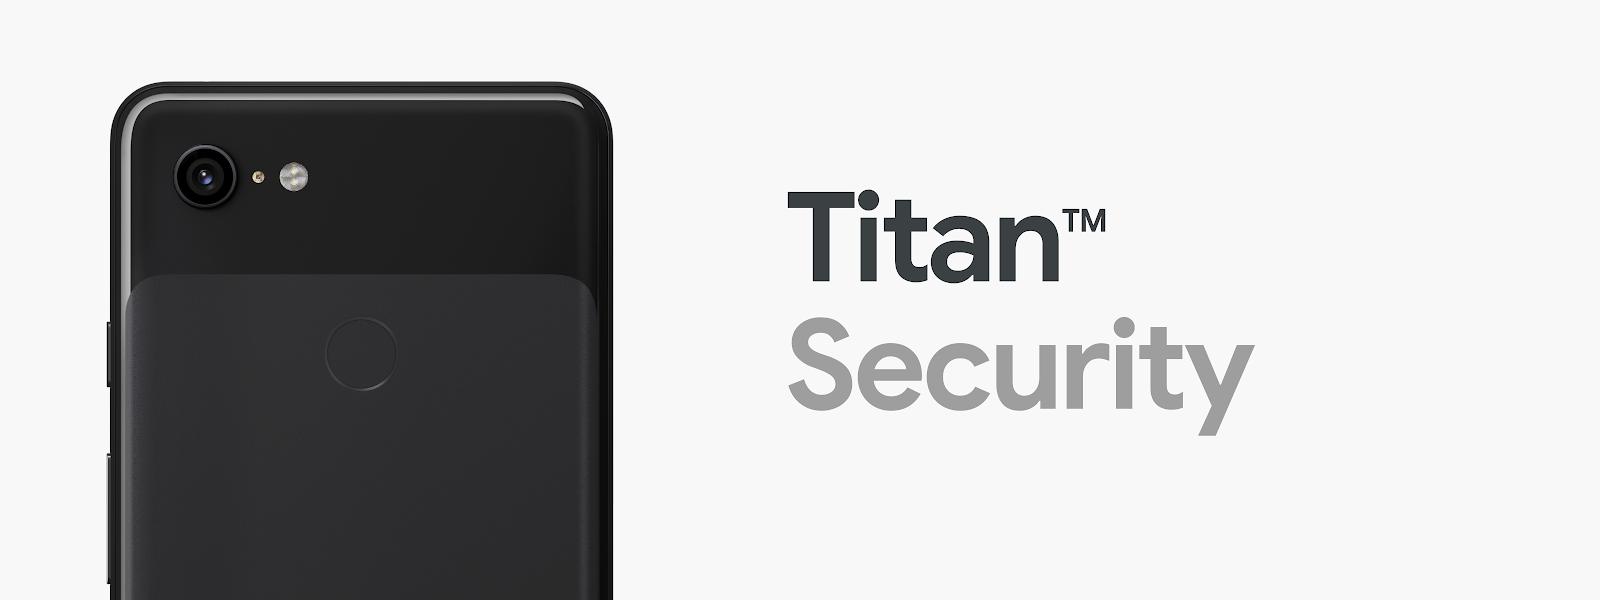 Titan M makes Pixel 3 our most secure phone yet